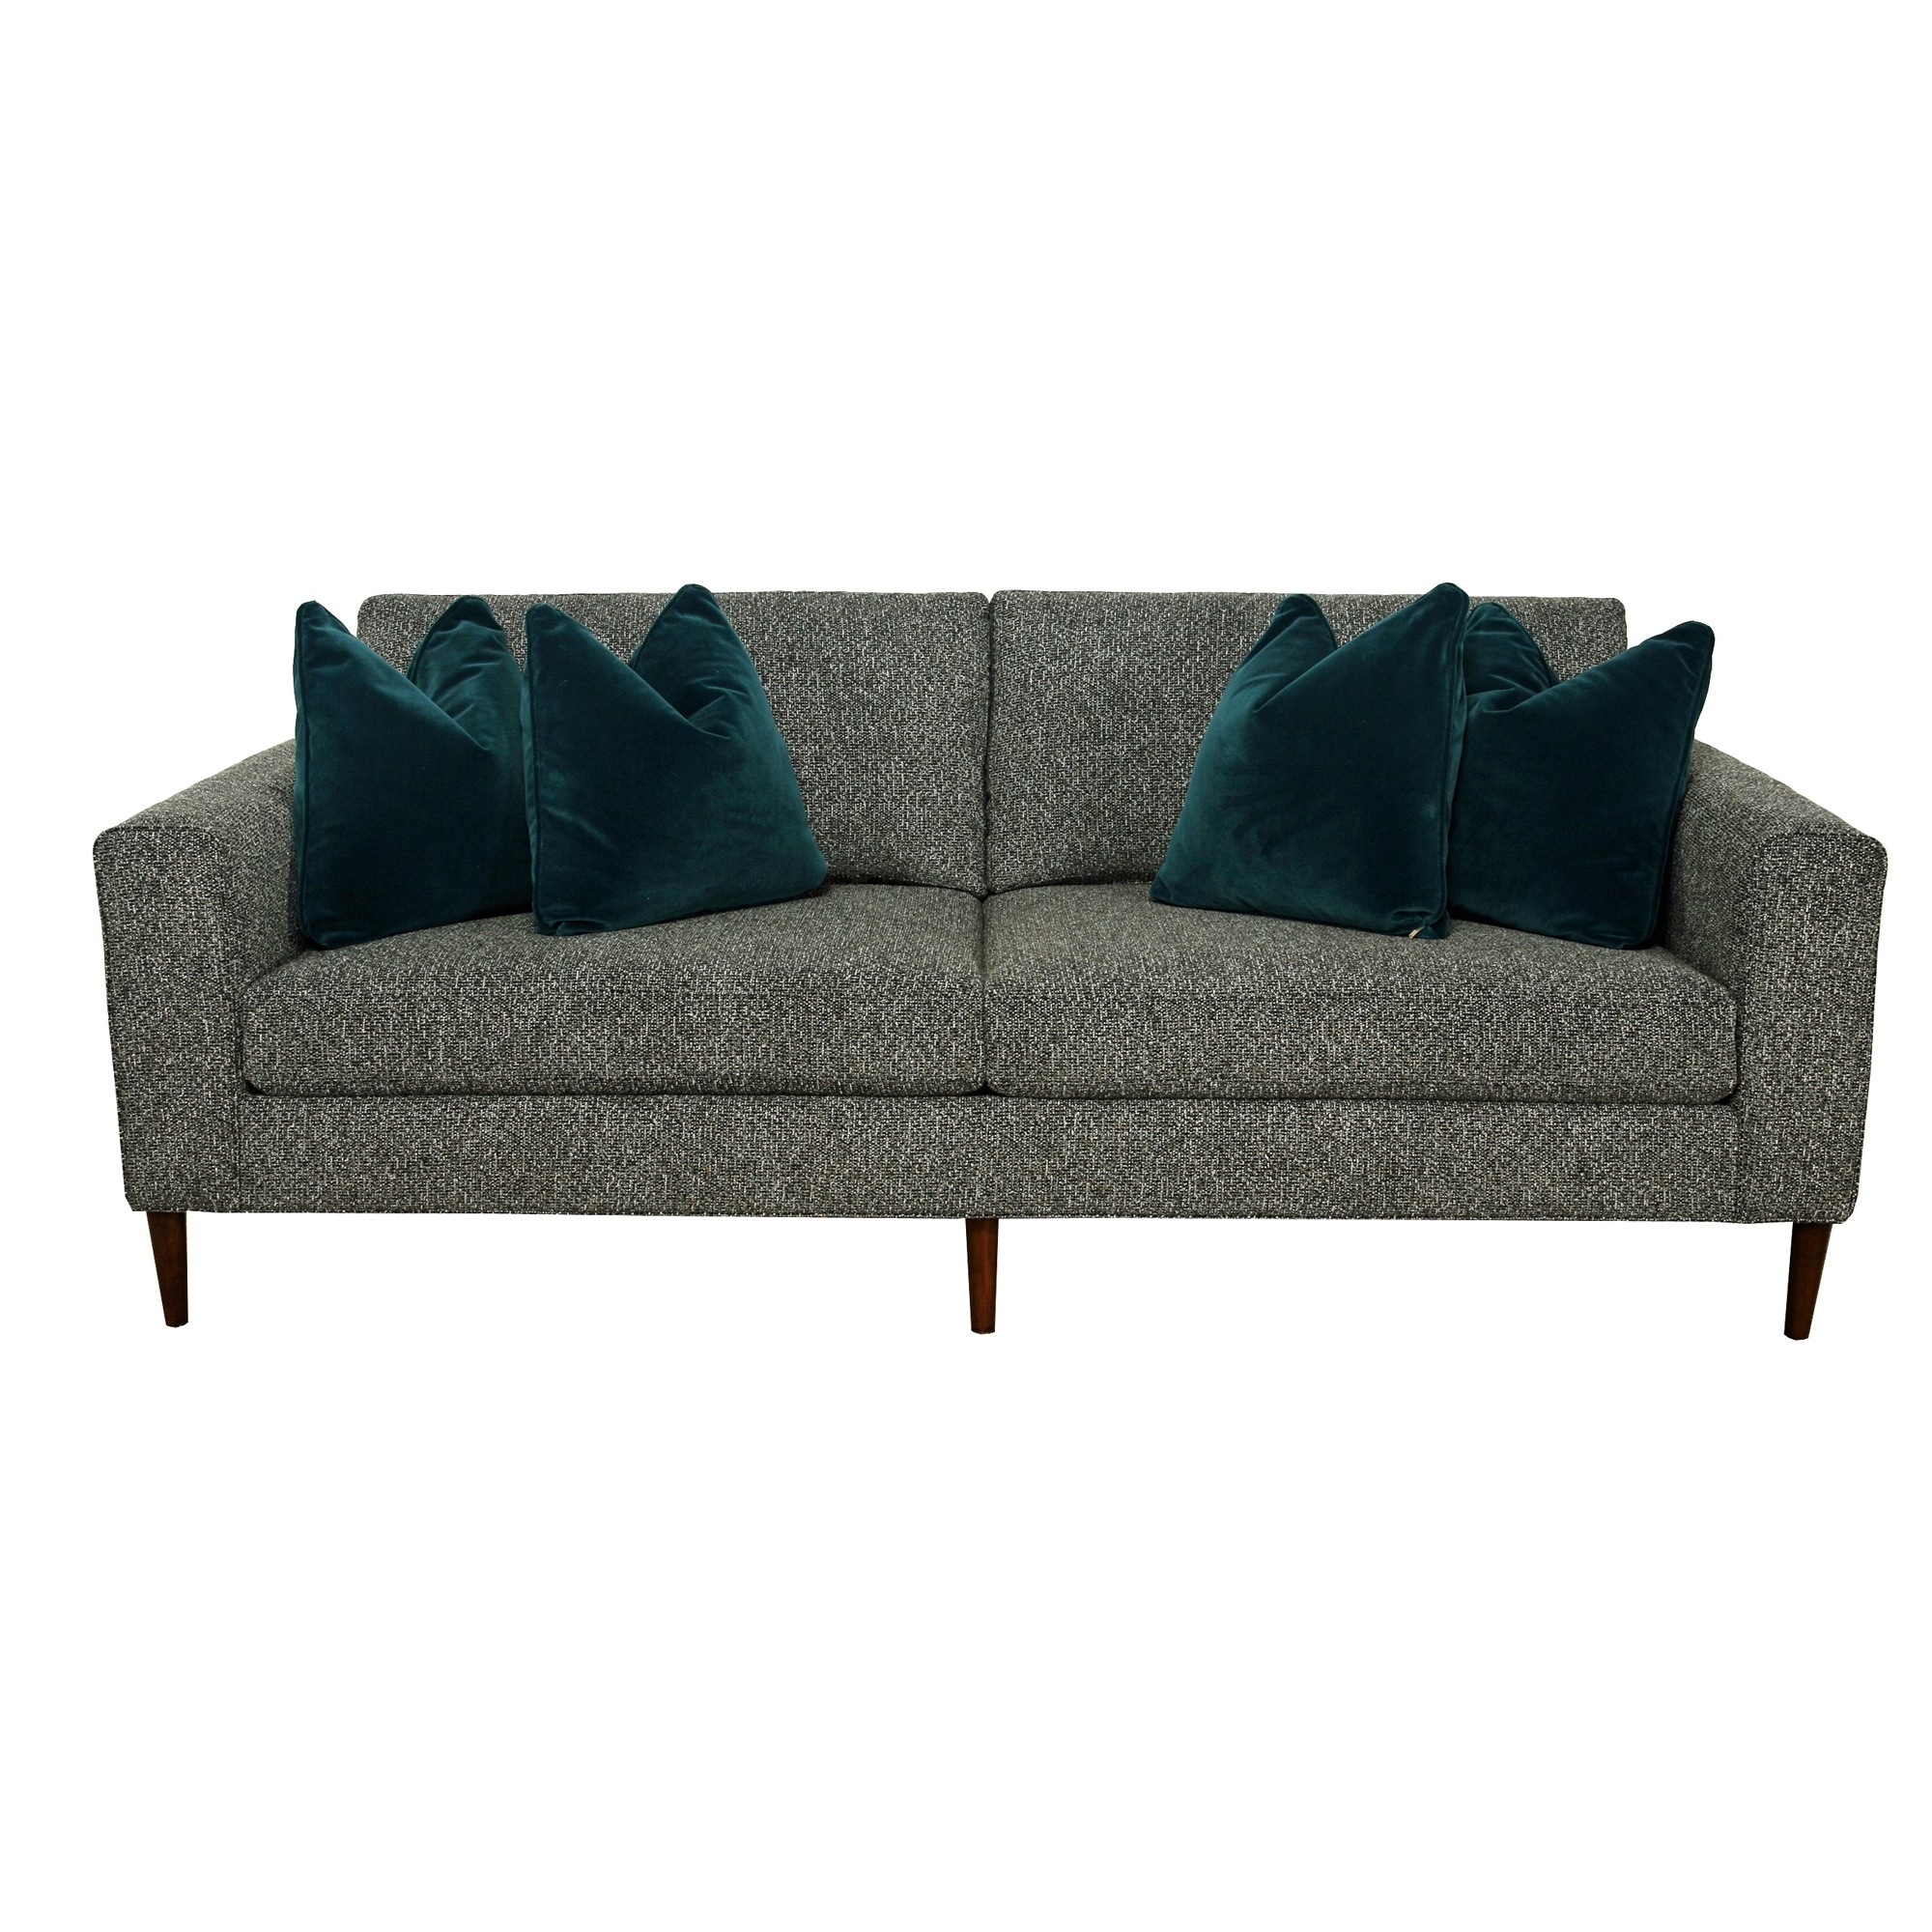 Tepperman's Within Most Current Teppermans Sectional Sofas (View 5 of 15)